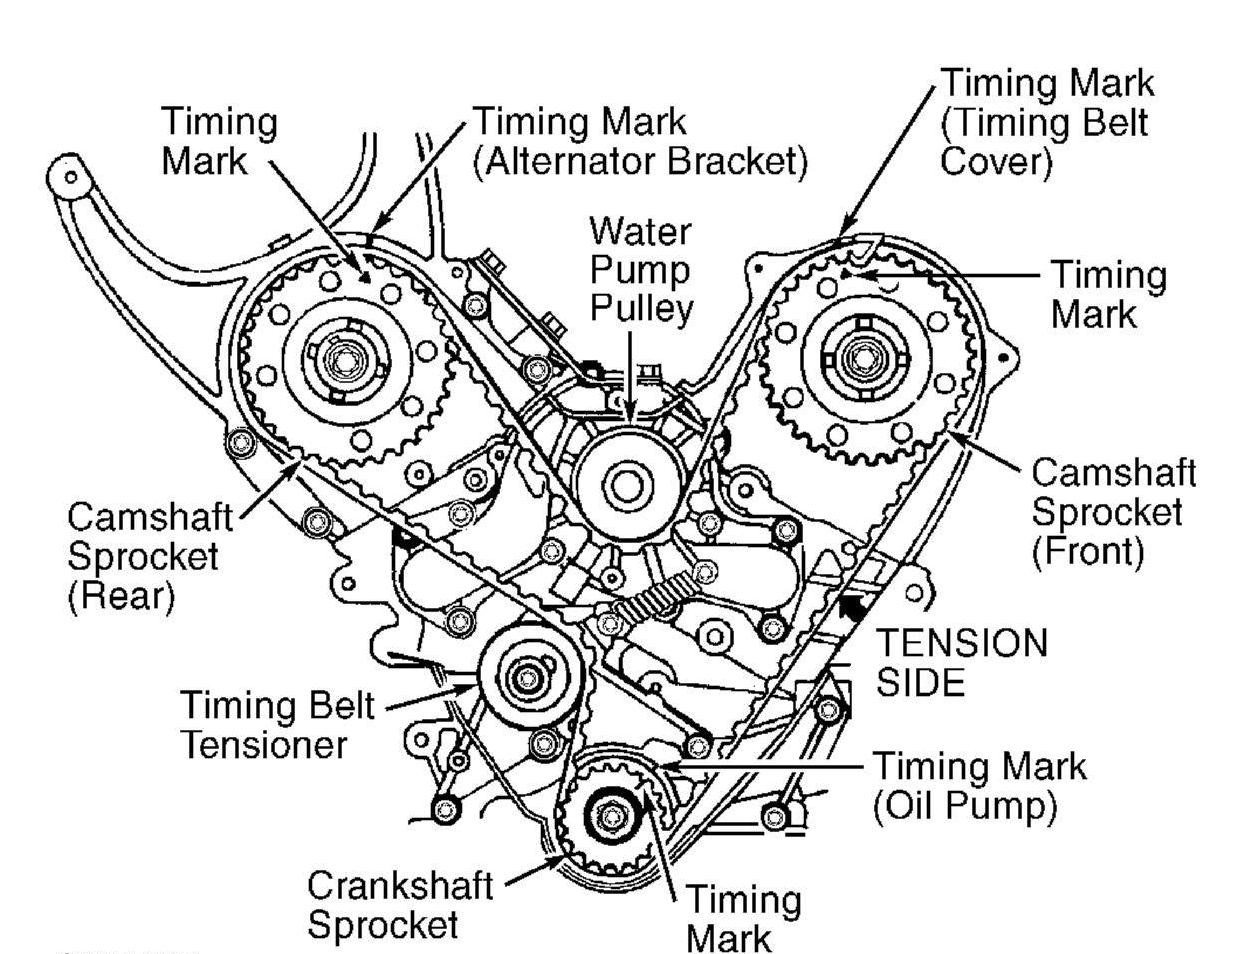 subaru 2 5 timing marks diagram  subaru  free engine image